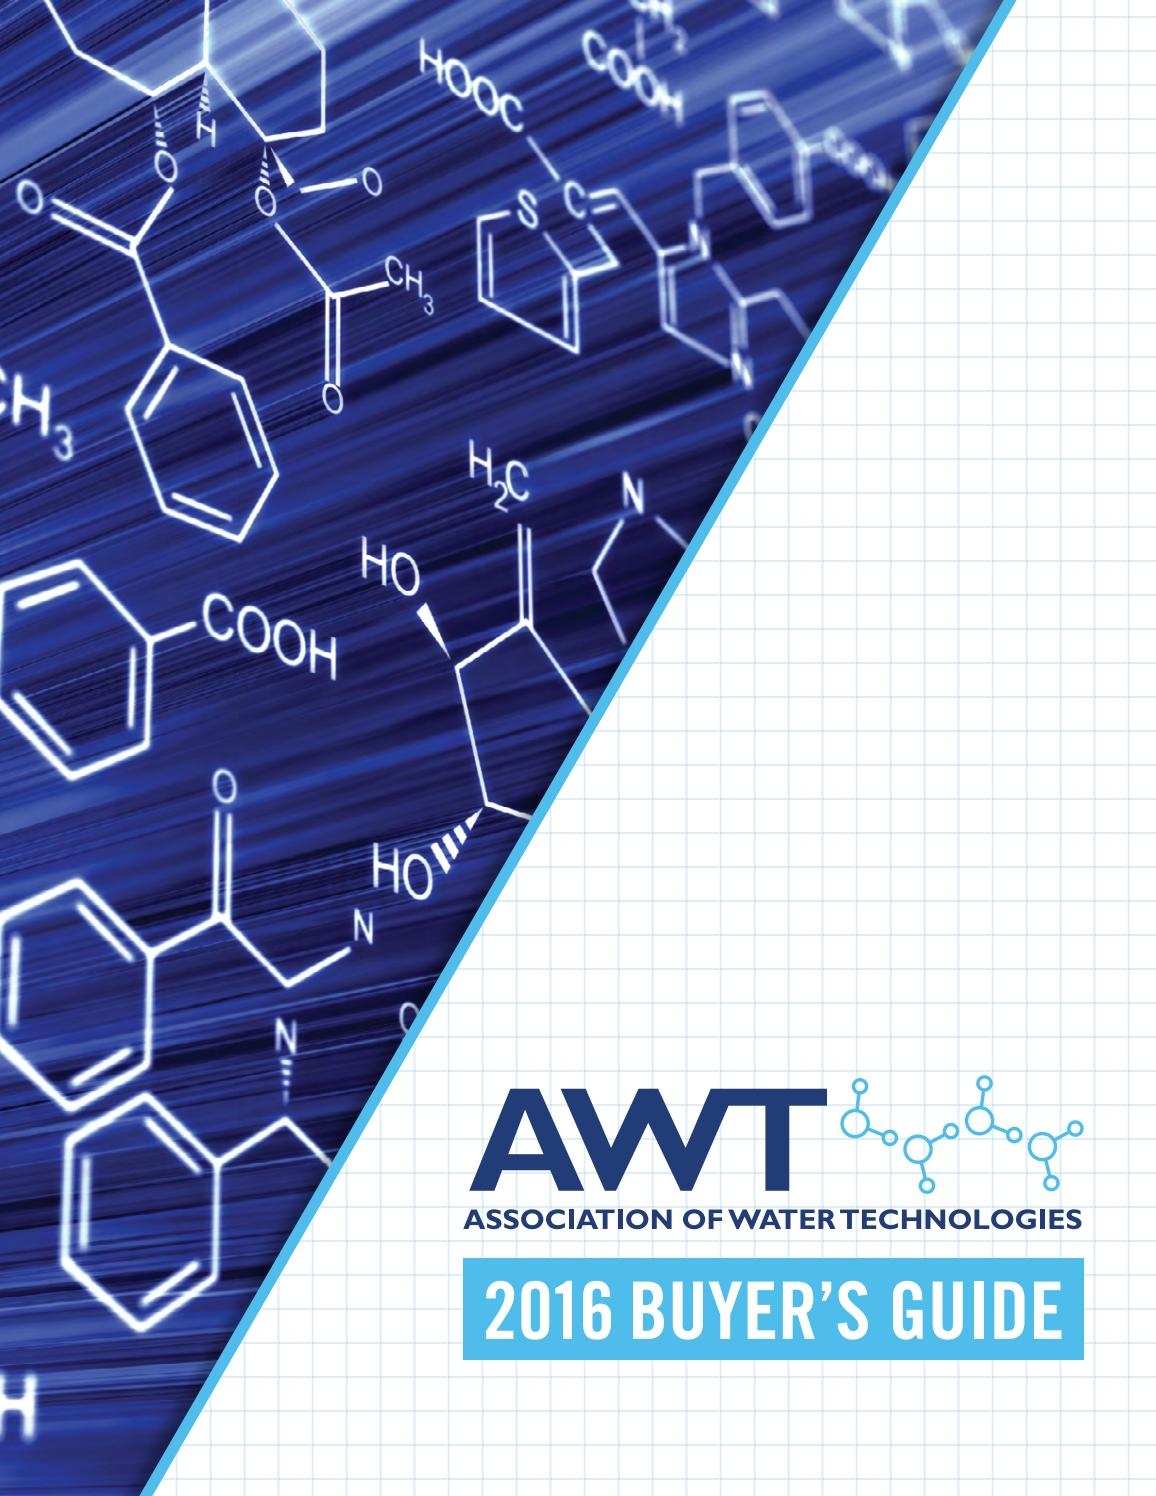 AWT Buyer's Guide 2016 by Association of Water Technologies